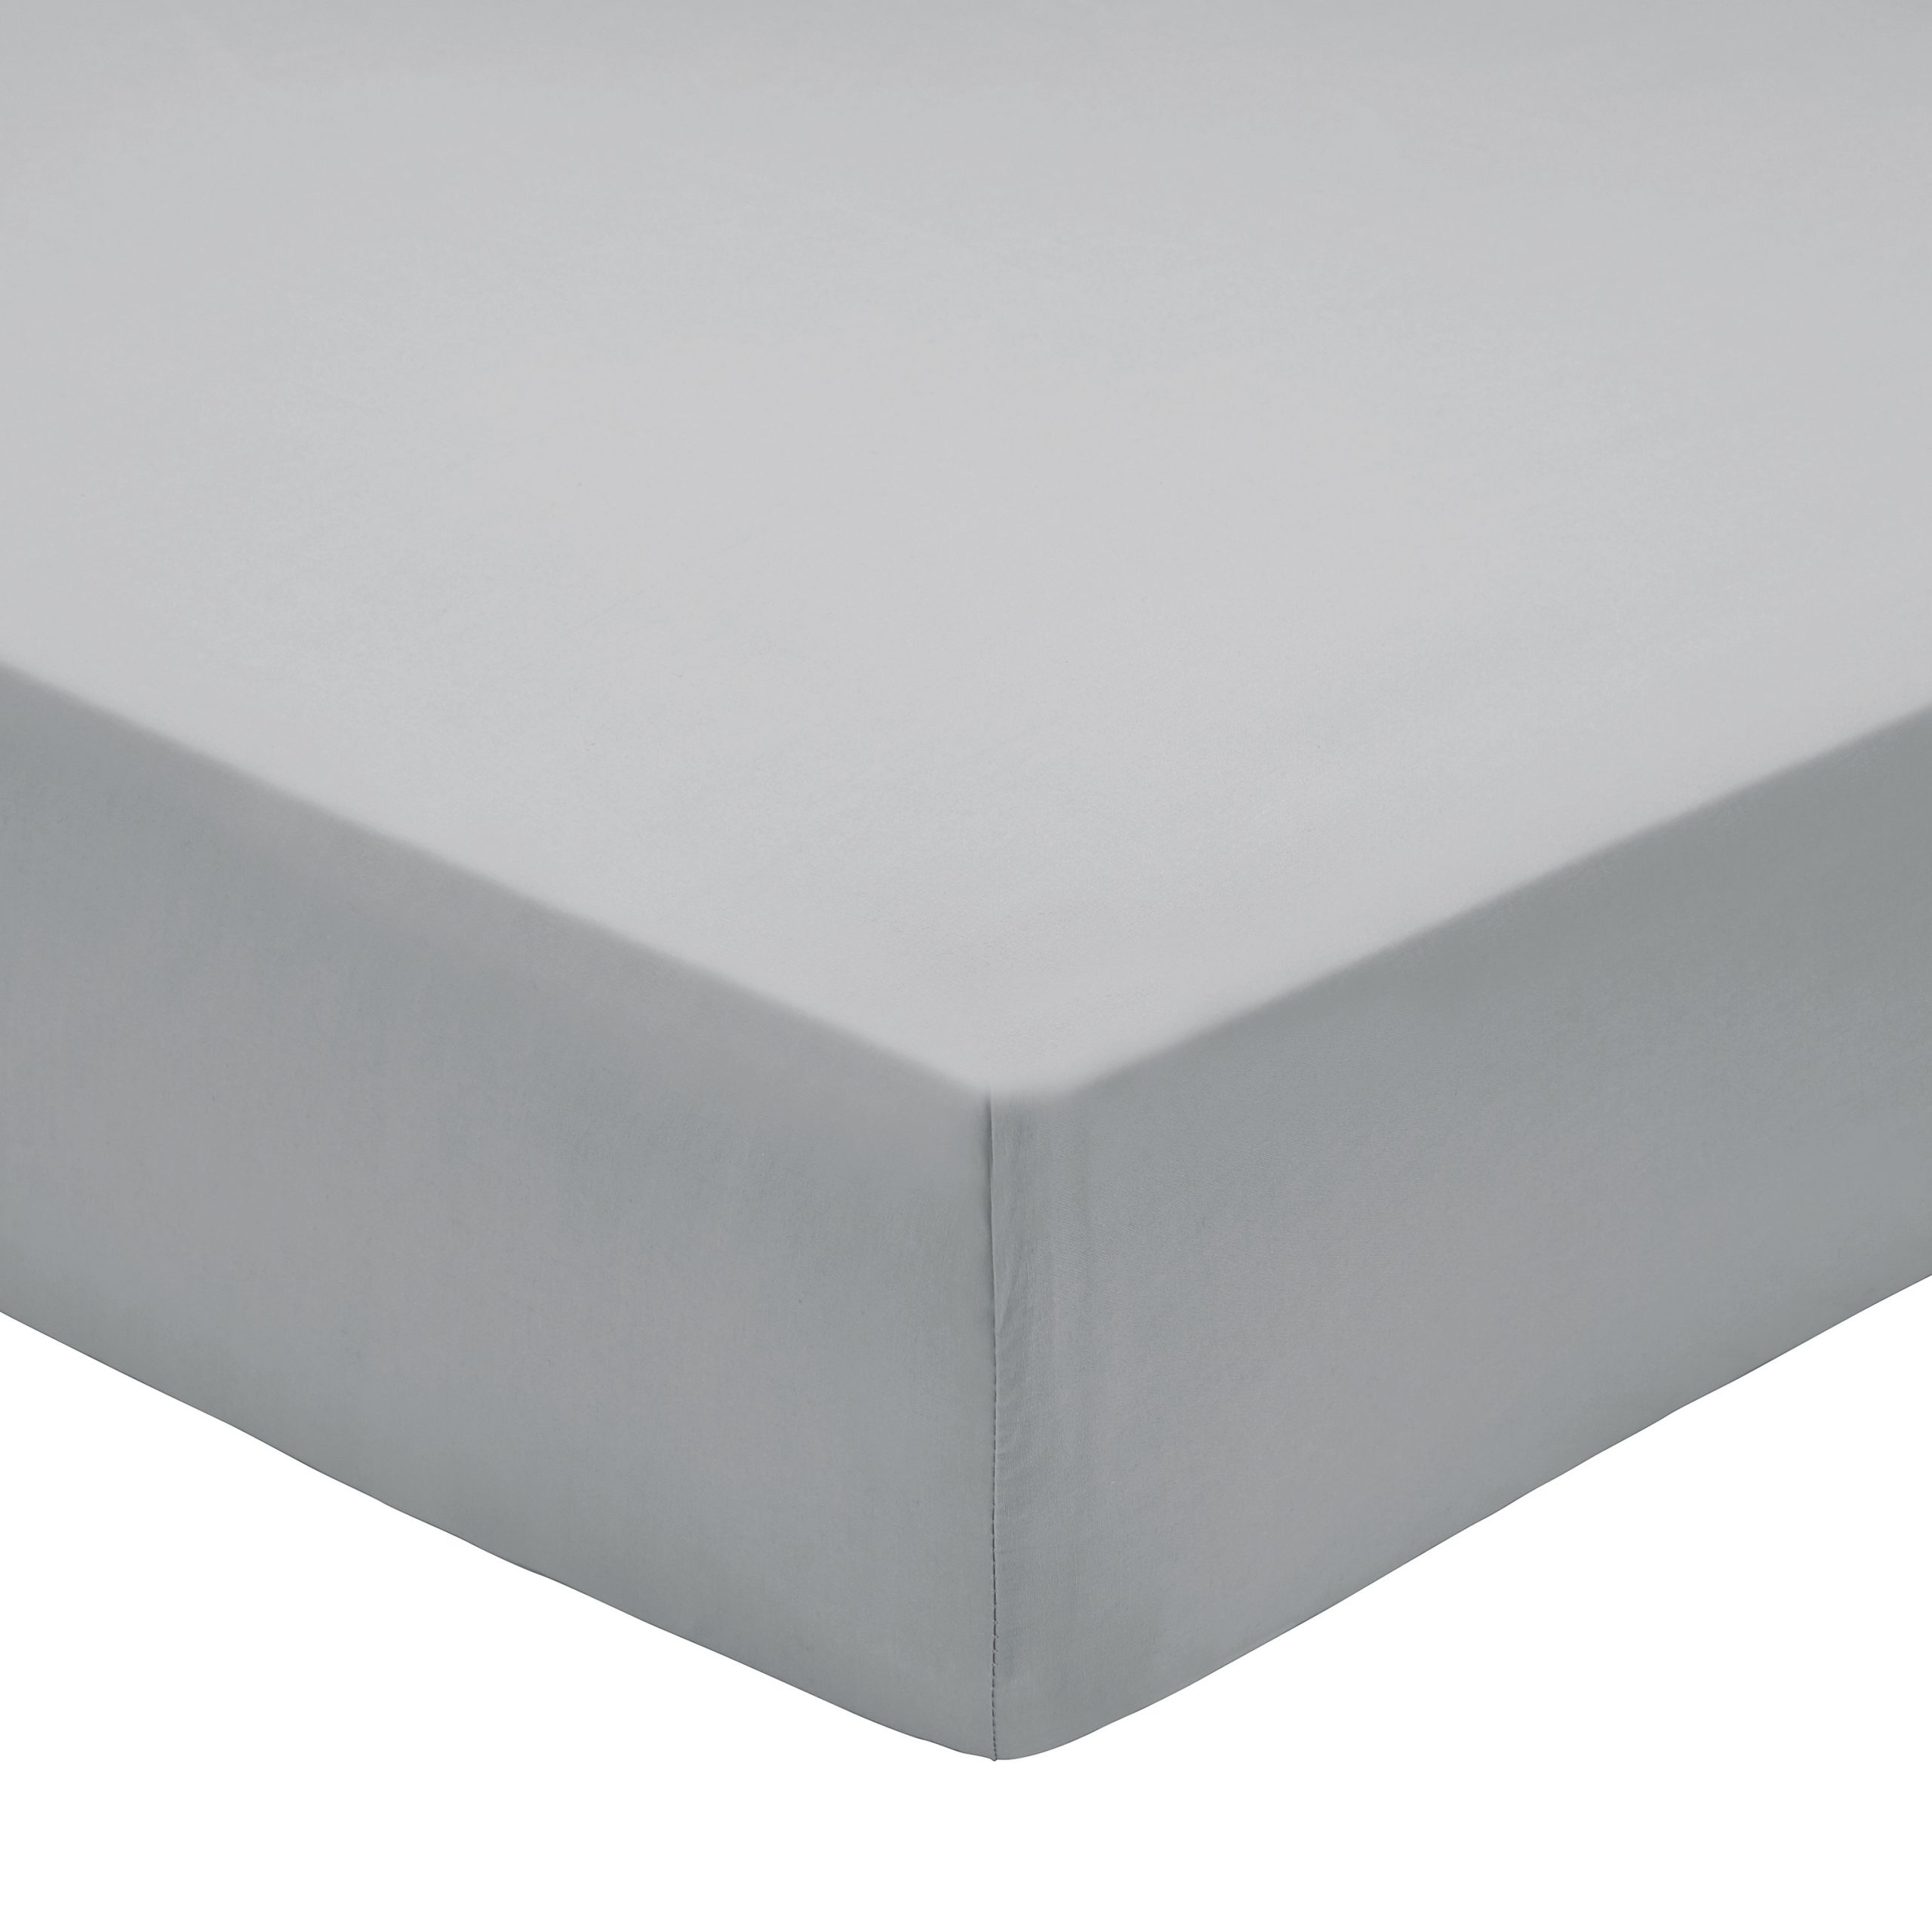 200TC PIMA COTTON FITTED SHEET SUPER KING SIZE GREY